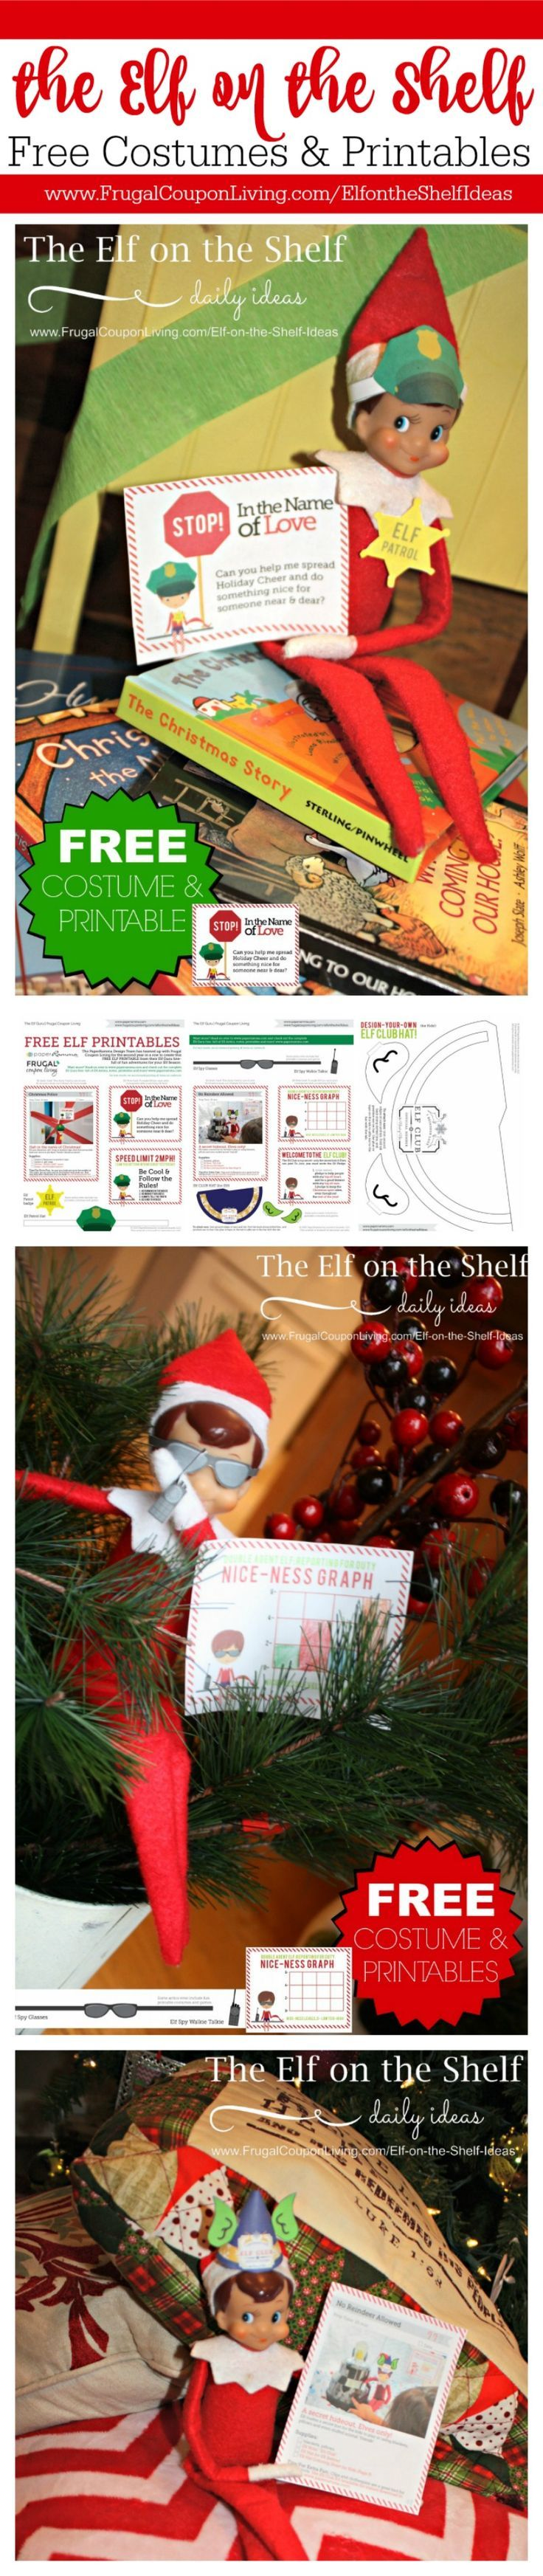 100s of daily elf on the shelf ideas and printable costumes and notes on Frugal Coupon Living. New ideas added every day in November and December. Free Elf Notes too!